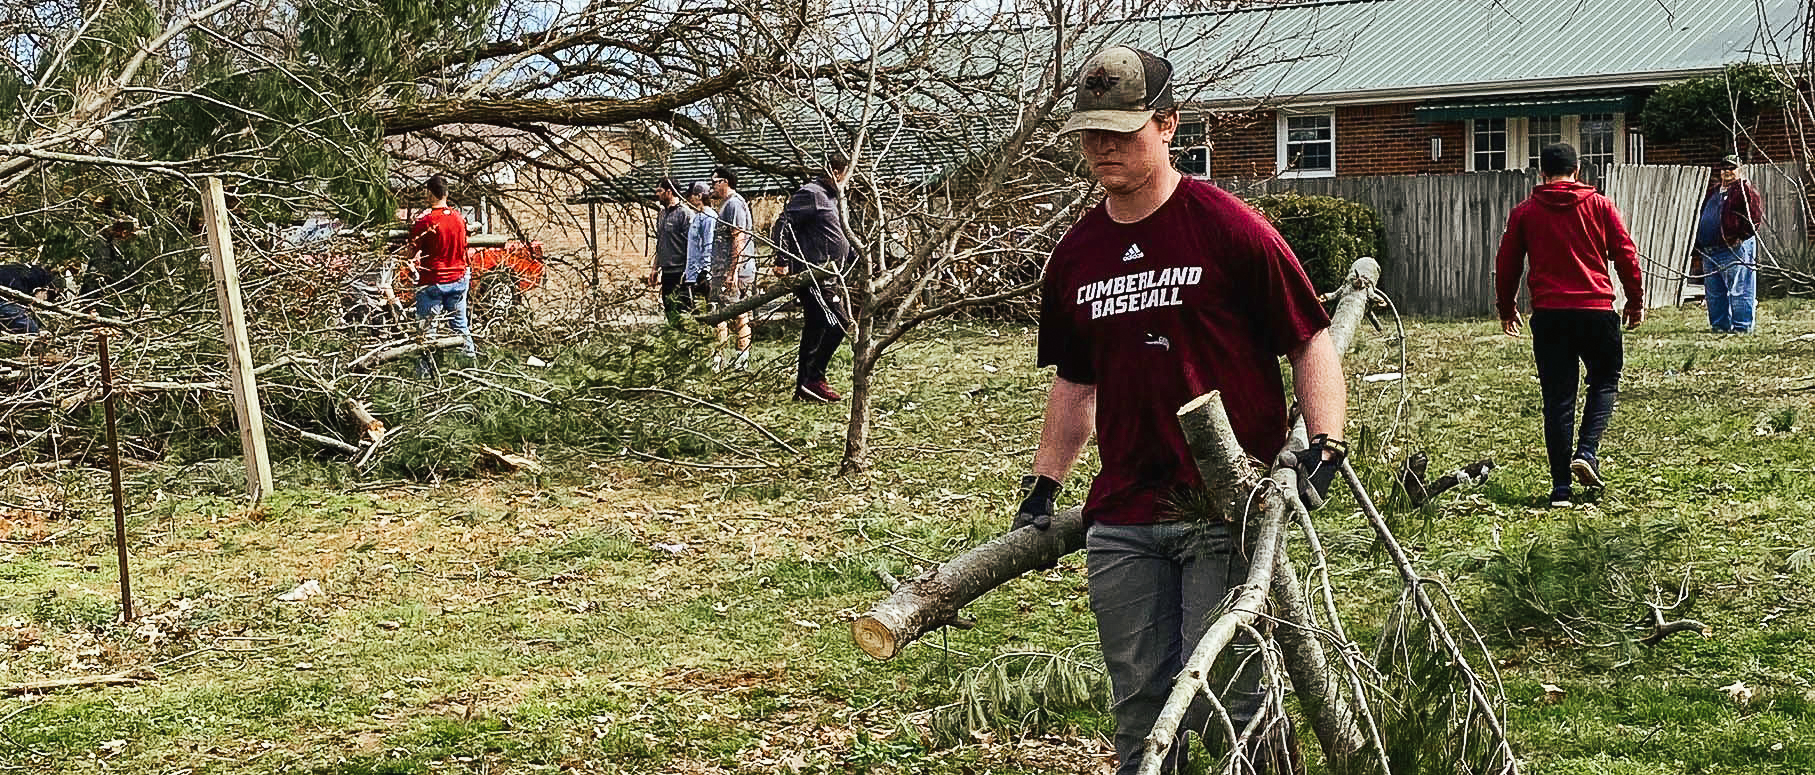 CU student helping with tornado clean up March 2020 Lebanon, TN